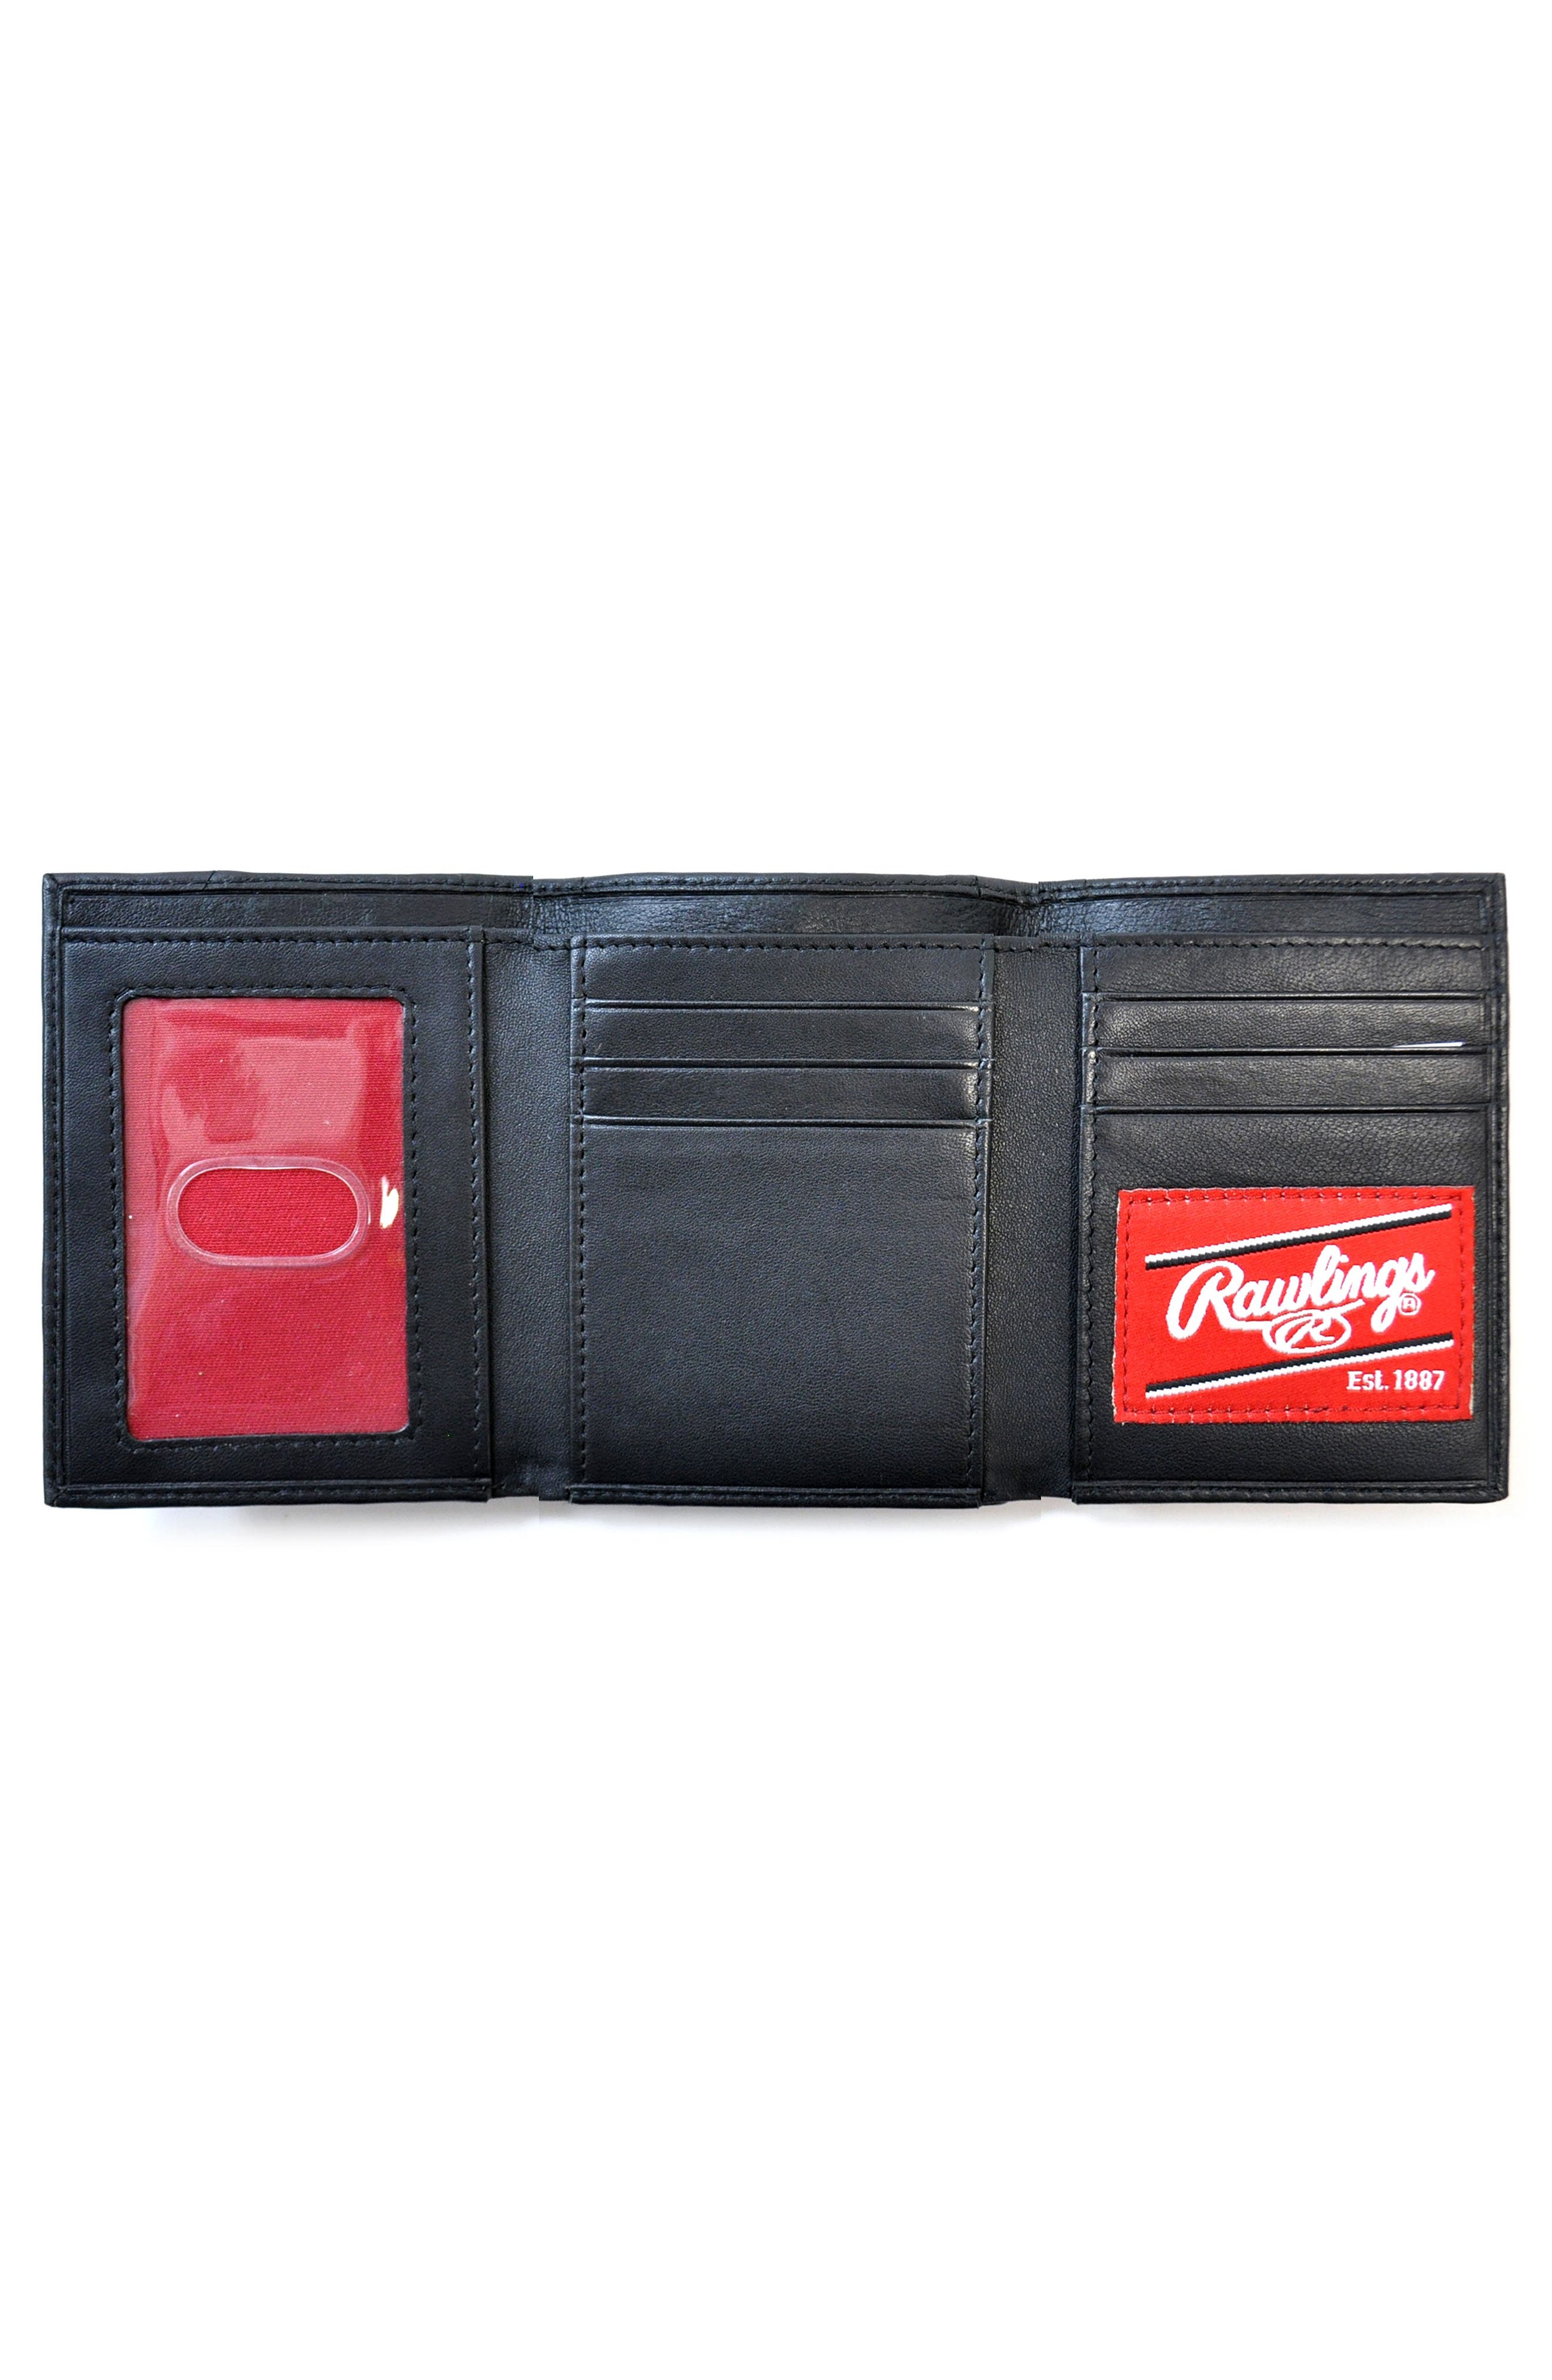 Baseball Stitch Leather Trifold Wallet,                             Alternate thumbnail 3, color,                             001